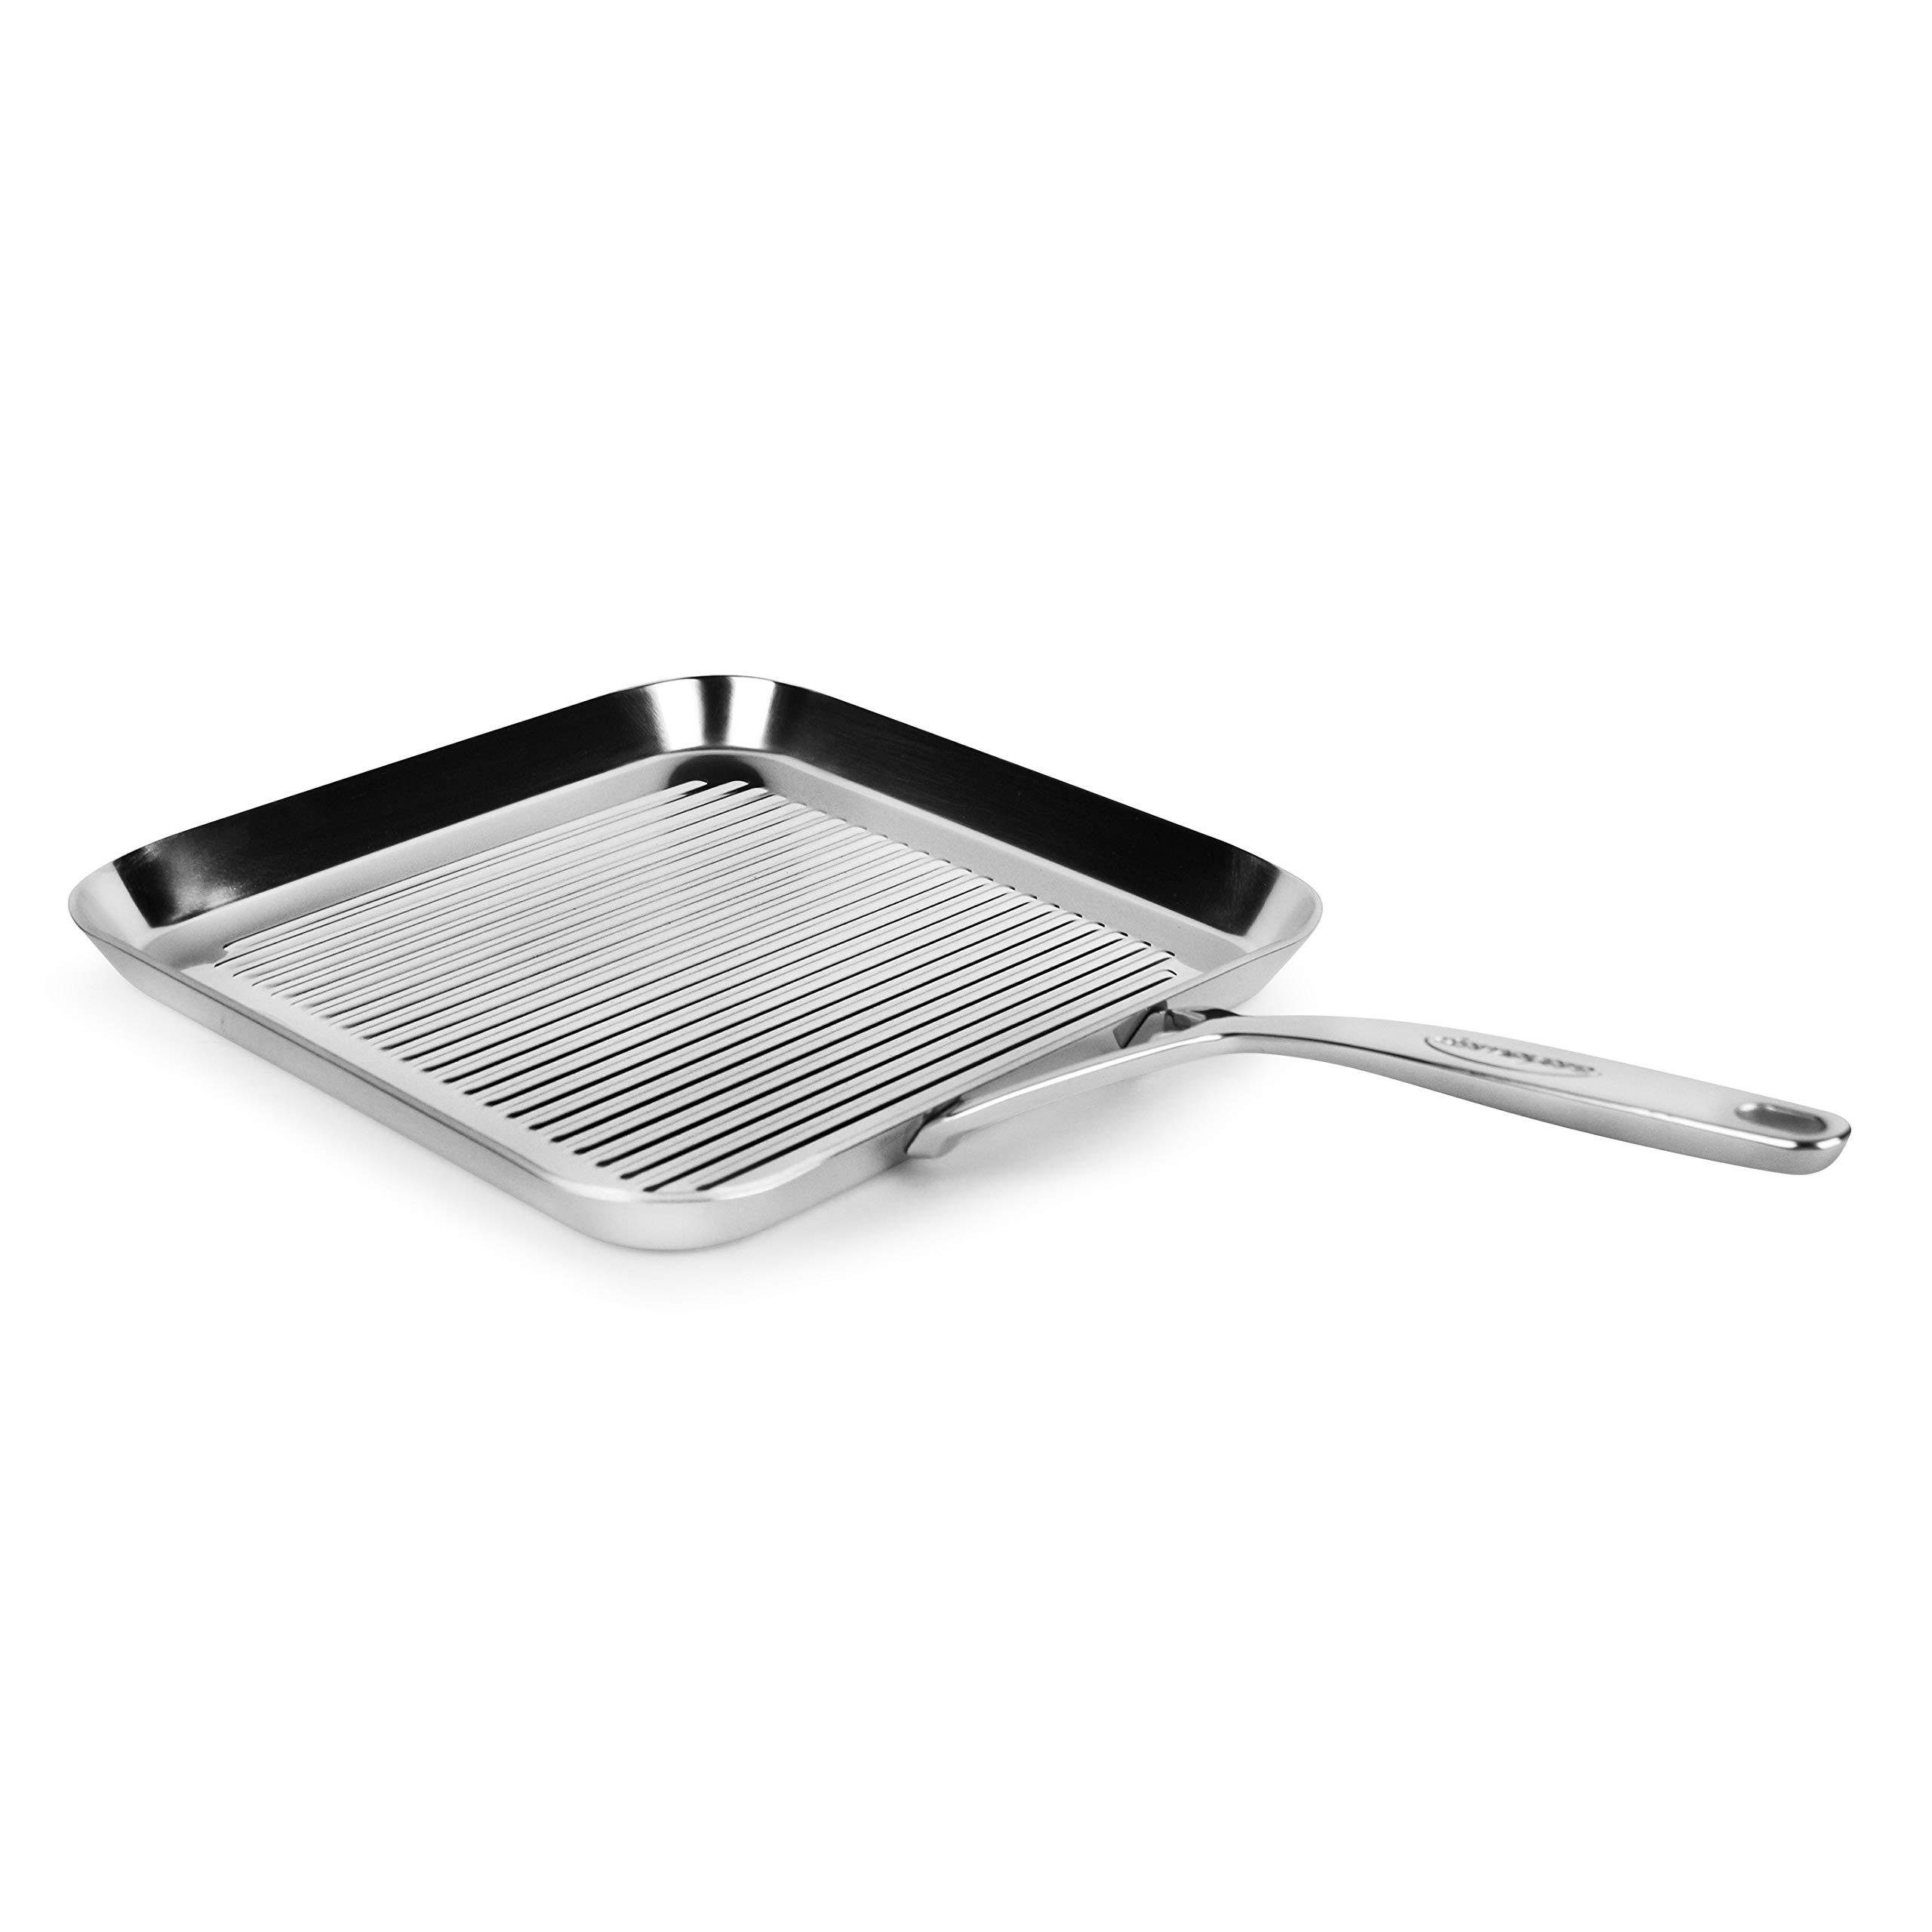 Demeyere 5-Plus 11-inch Stainless Steel Grill Pan